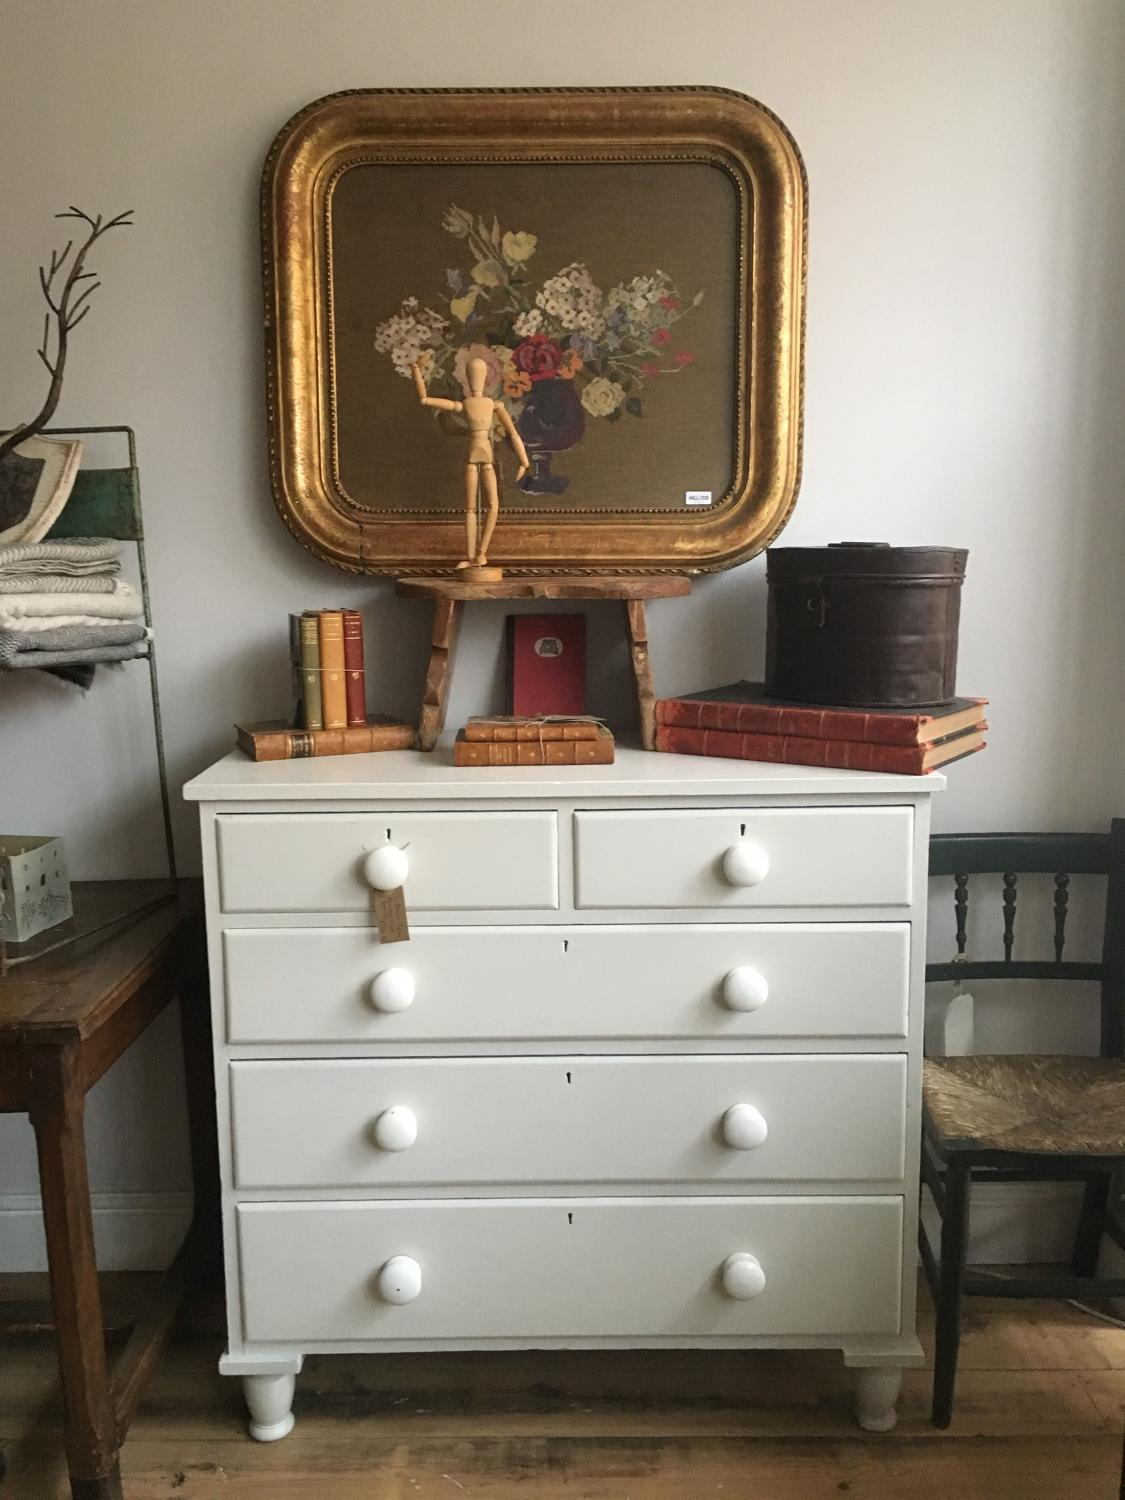 Victorian Pine Chest Of Drawers Victorian Painted Pine Chest Of Drawers With Original Porcelain